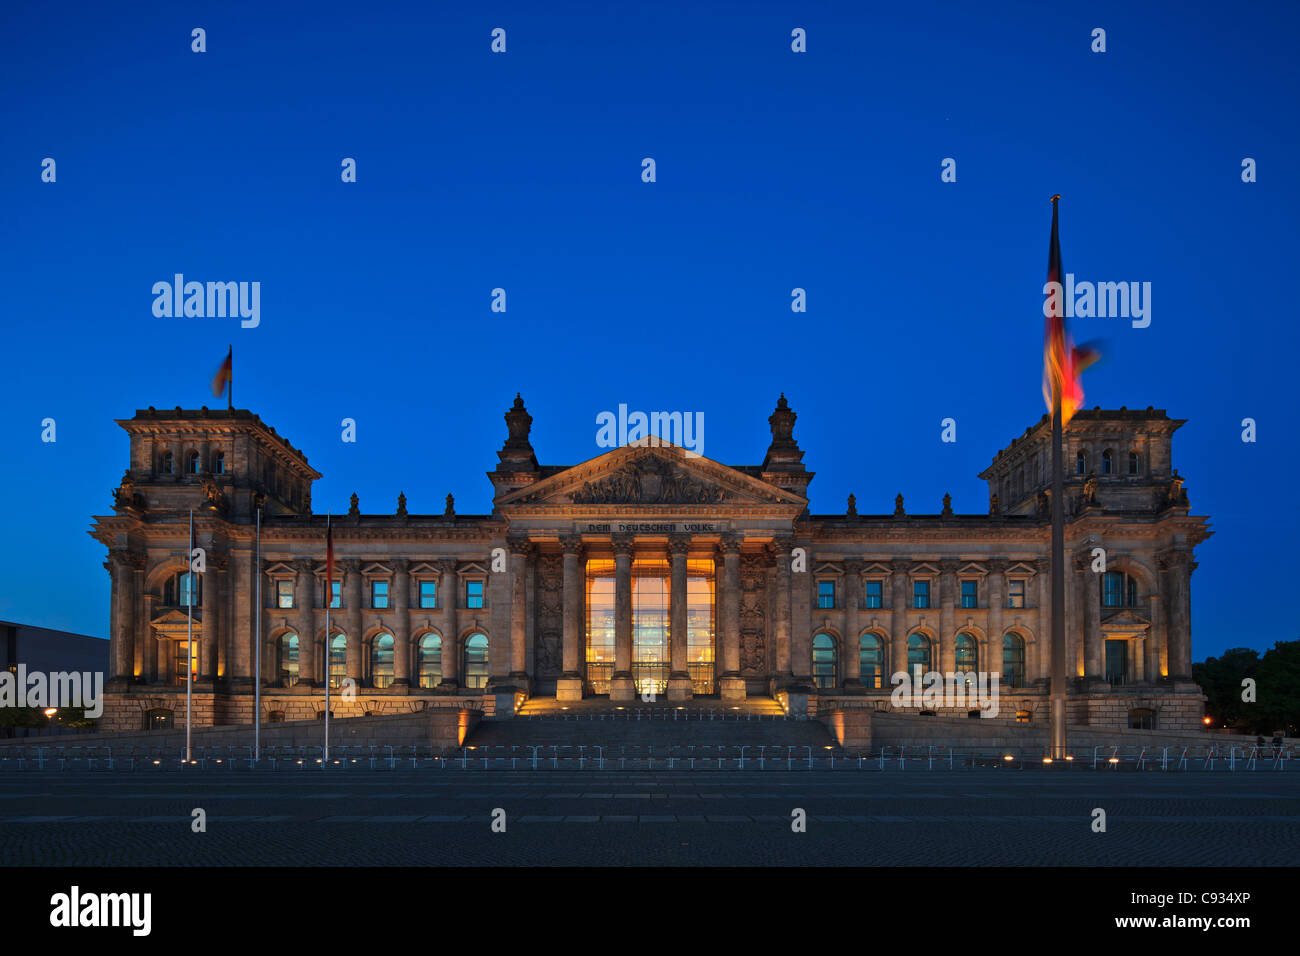 Twilight view of the front facade of the Reichstag building in Tiergarten, Berlin, Germany - Stock Image